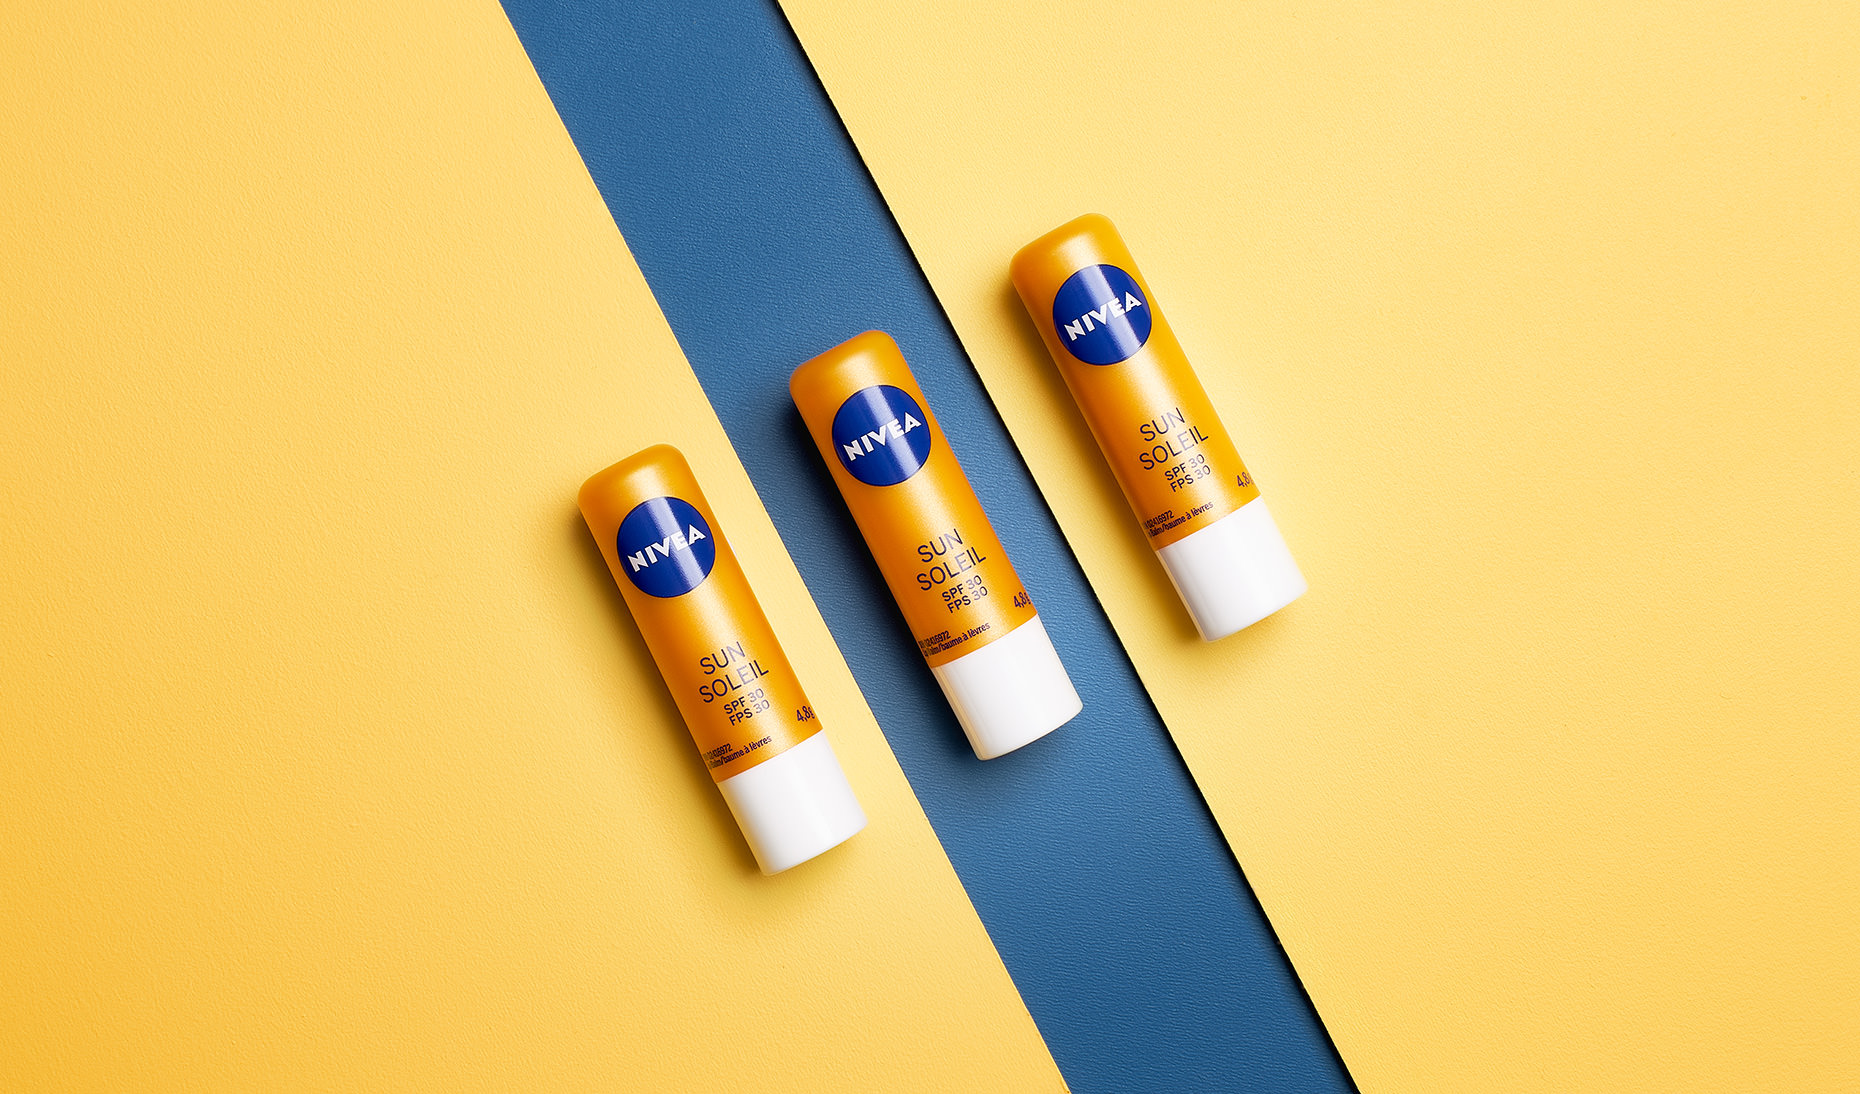 I've recently had the opportunity to work on some content creation for for Nivea Beiersdorf Canada. We produced 'summer routine' content in the form of table top and lifestyle photography using models and locations in Ottawa,